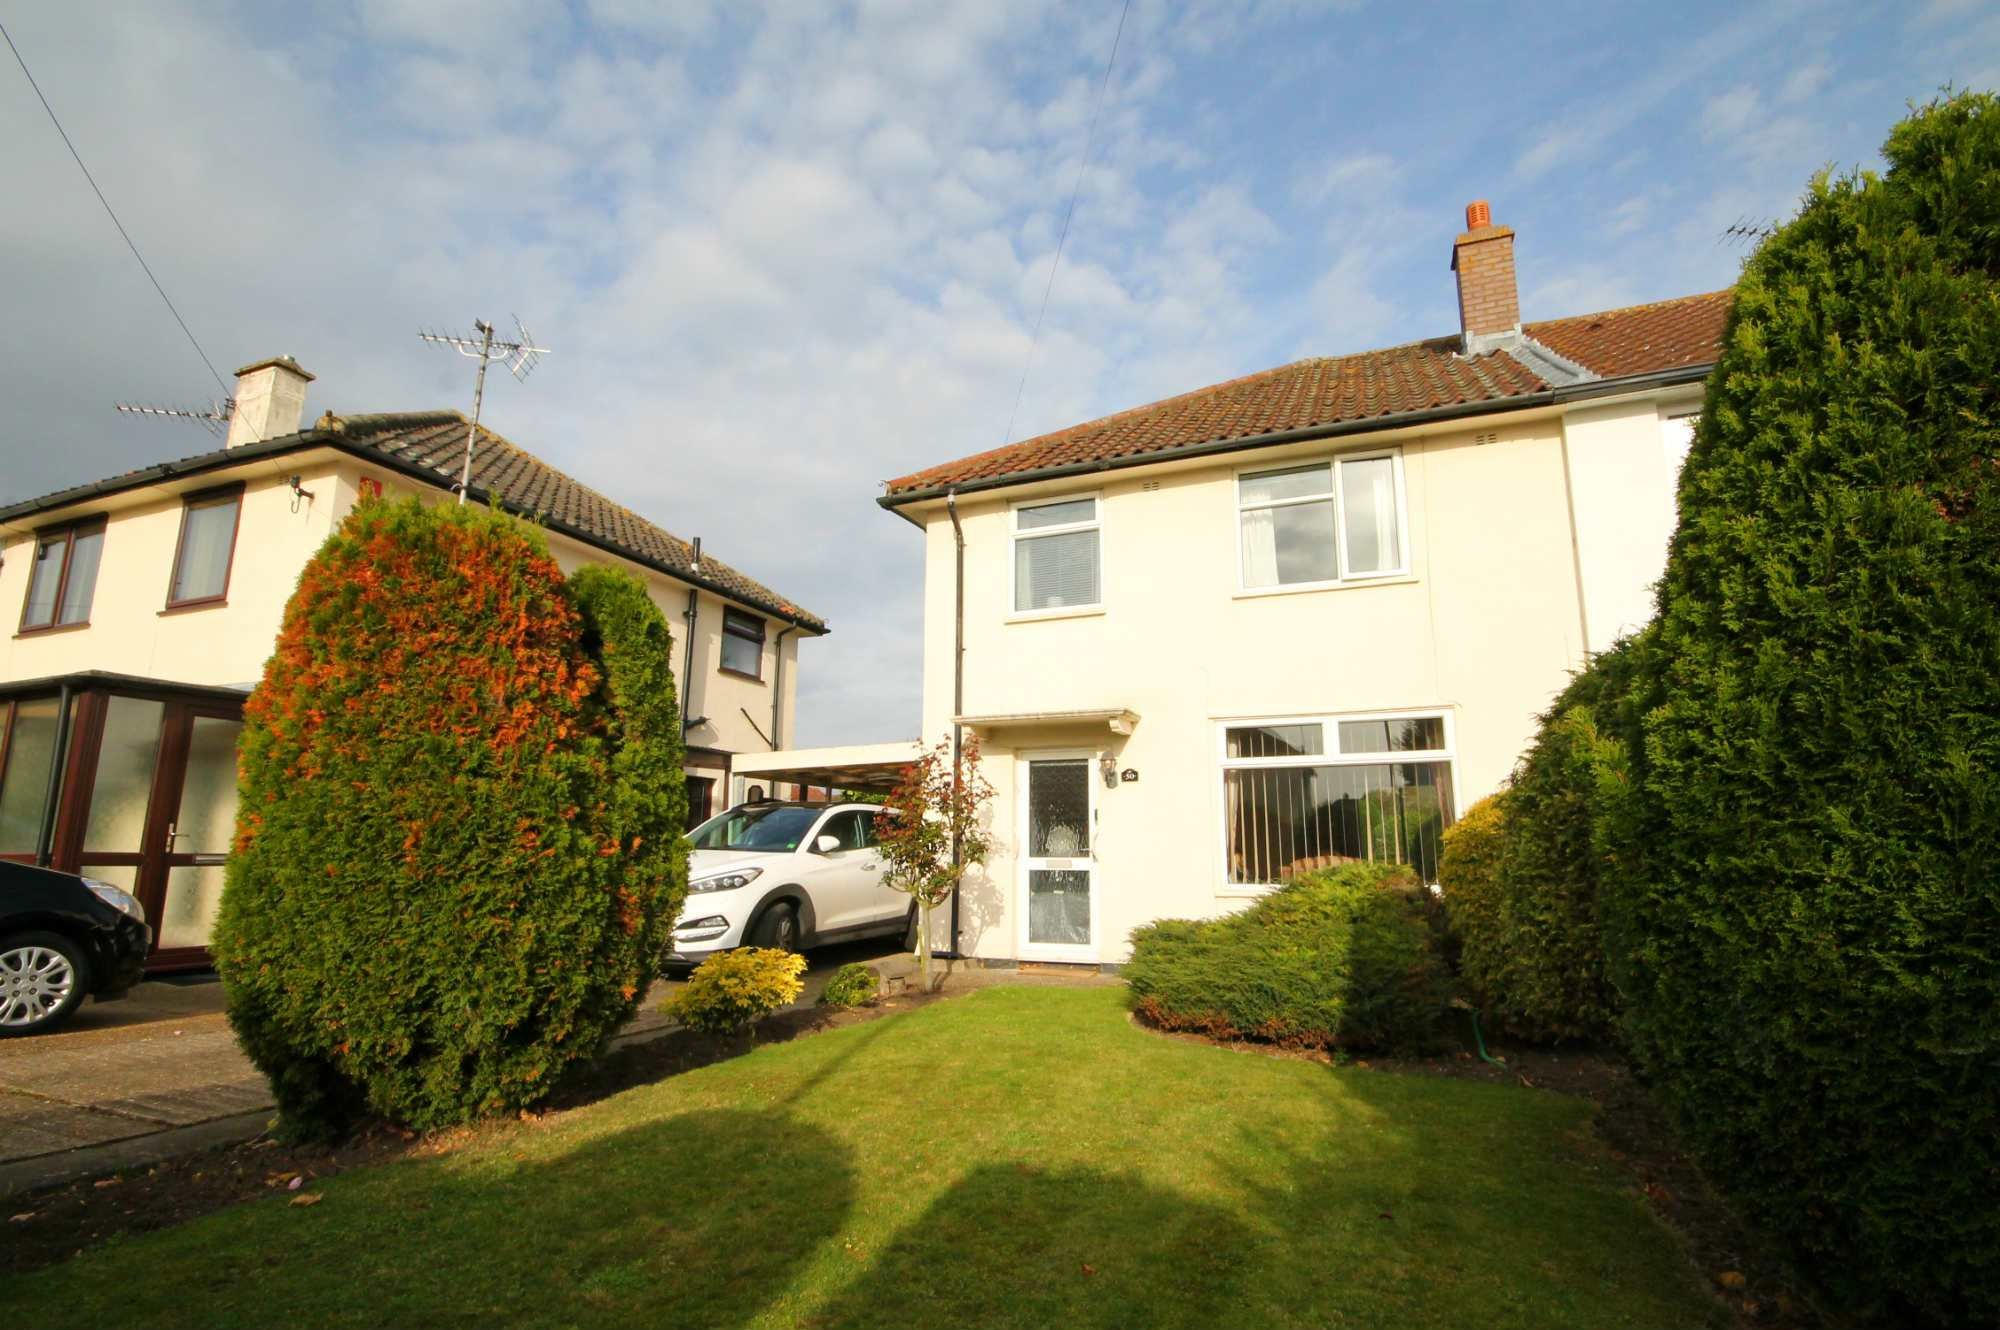 Best 3 Bedroom House For Sale Fanshawe Road Cambridge Cb Cb1 3Qy With Pictures